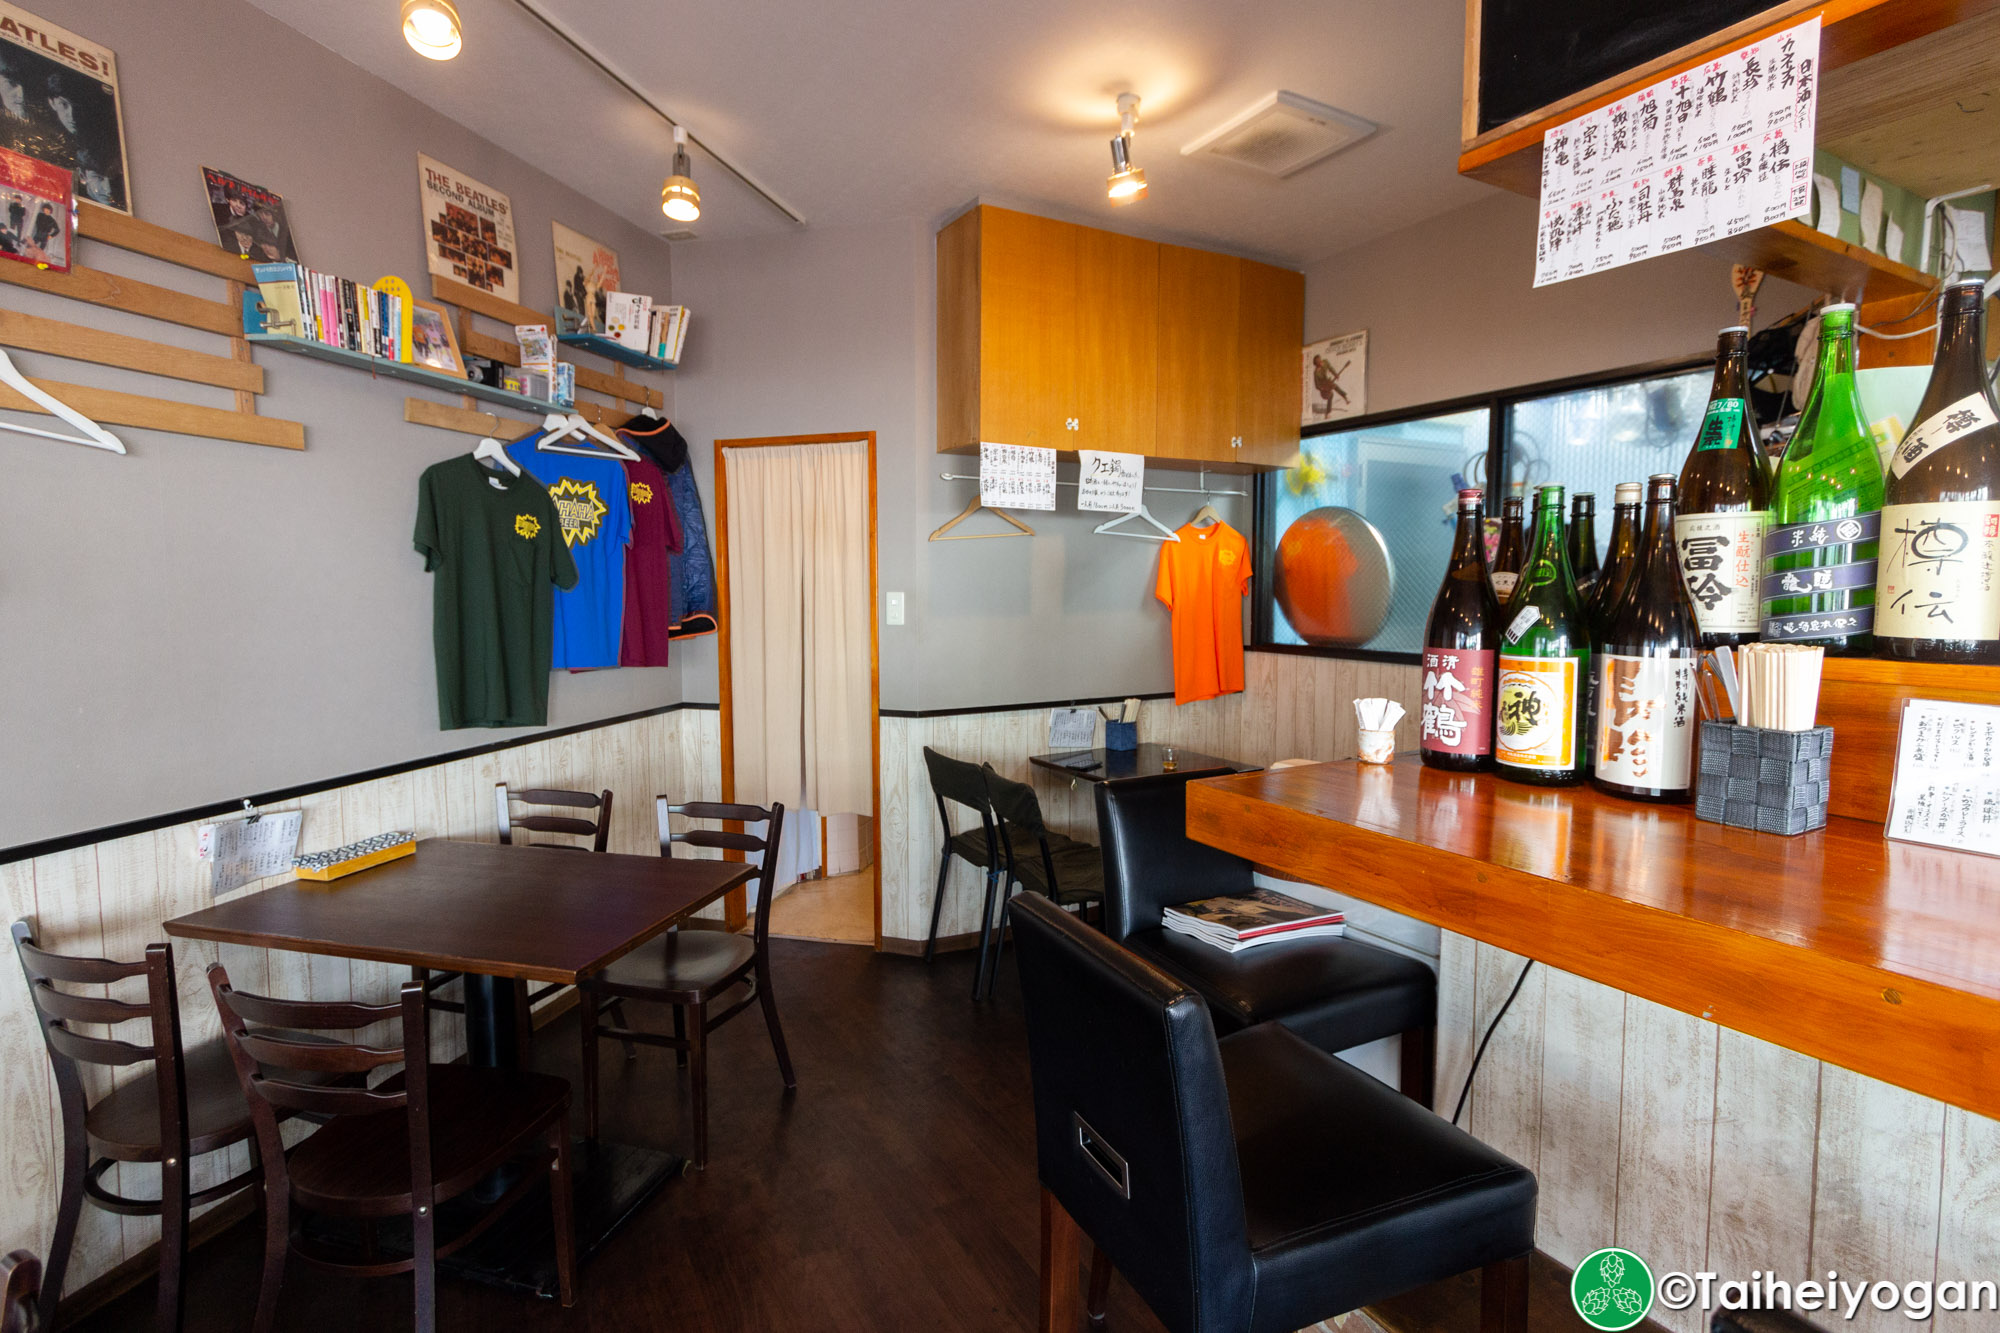 ガハハビール・Gahaha Beer - Interior - Table Seating